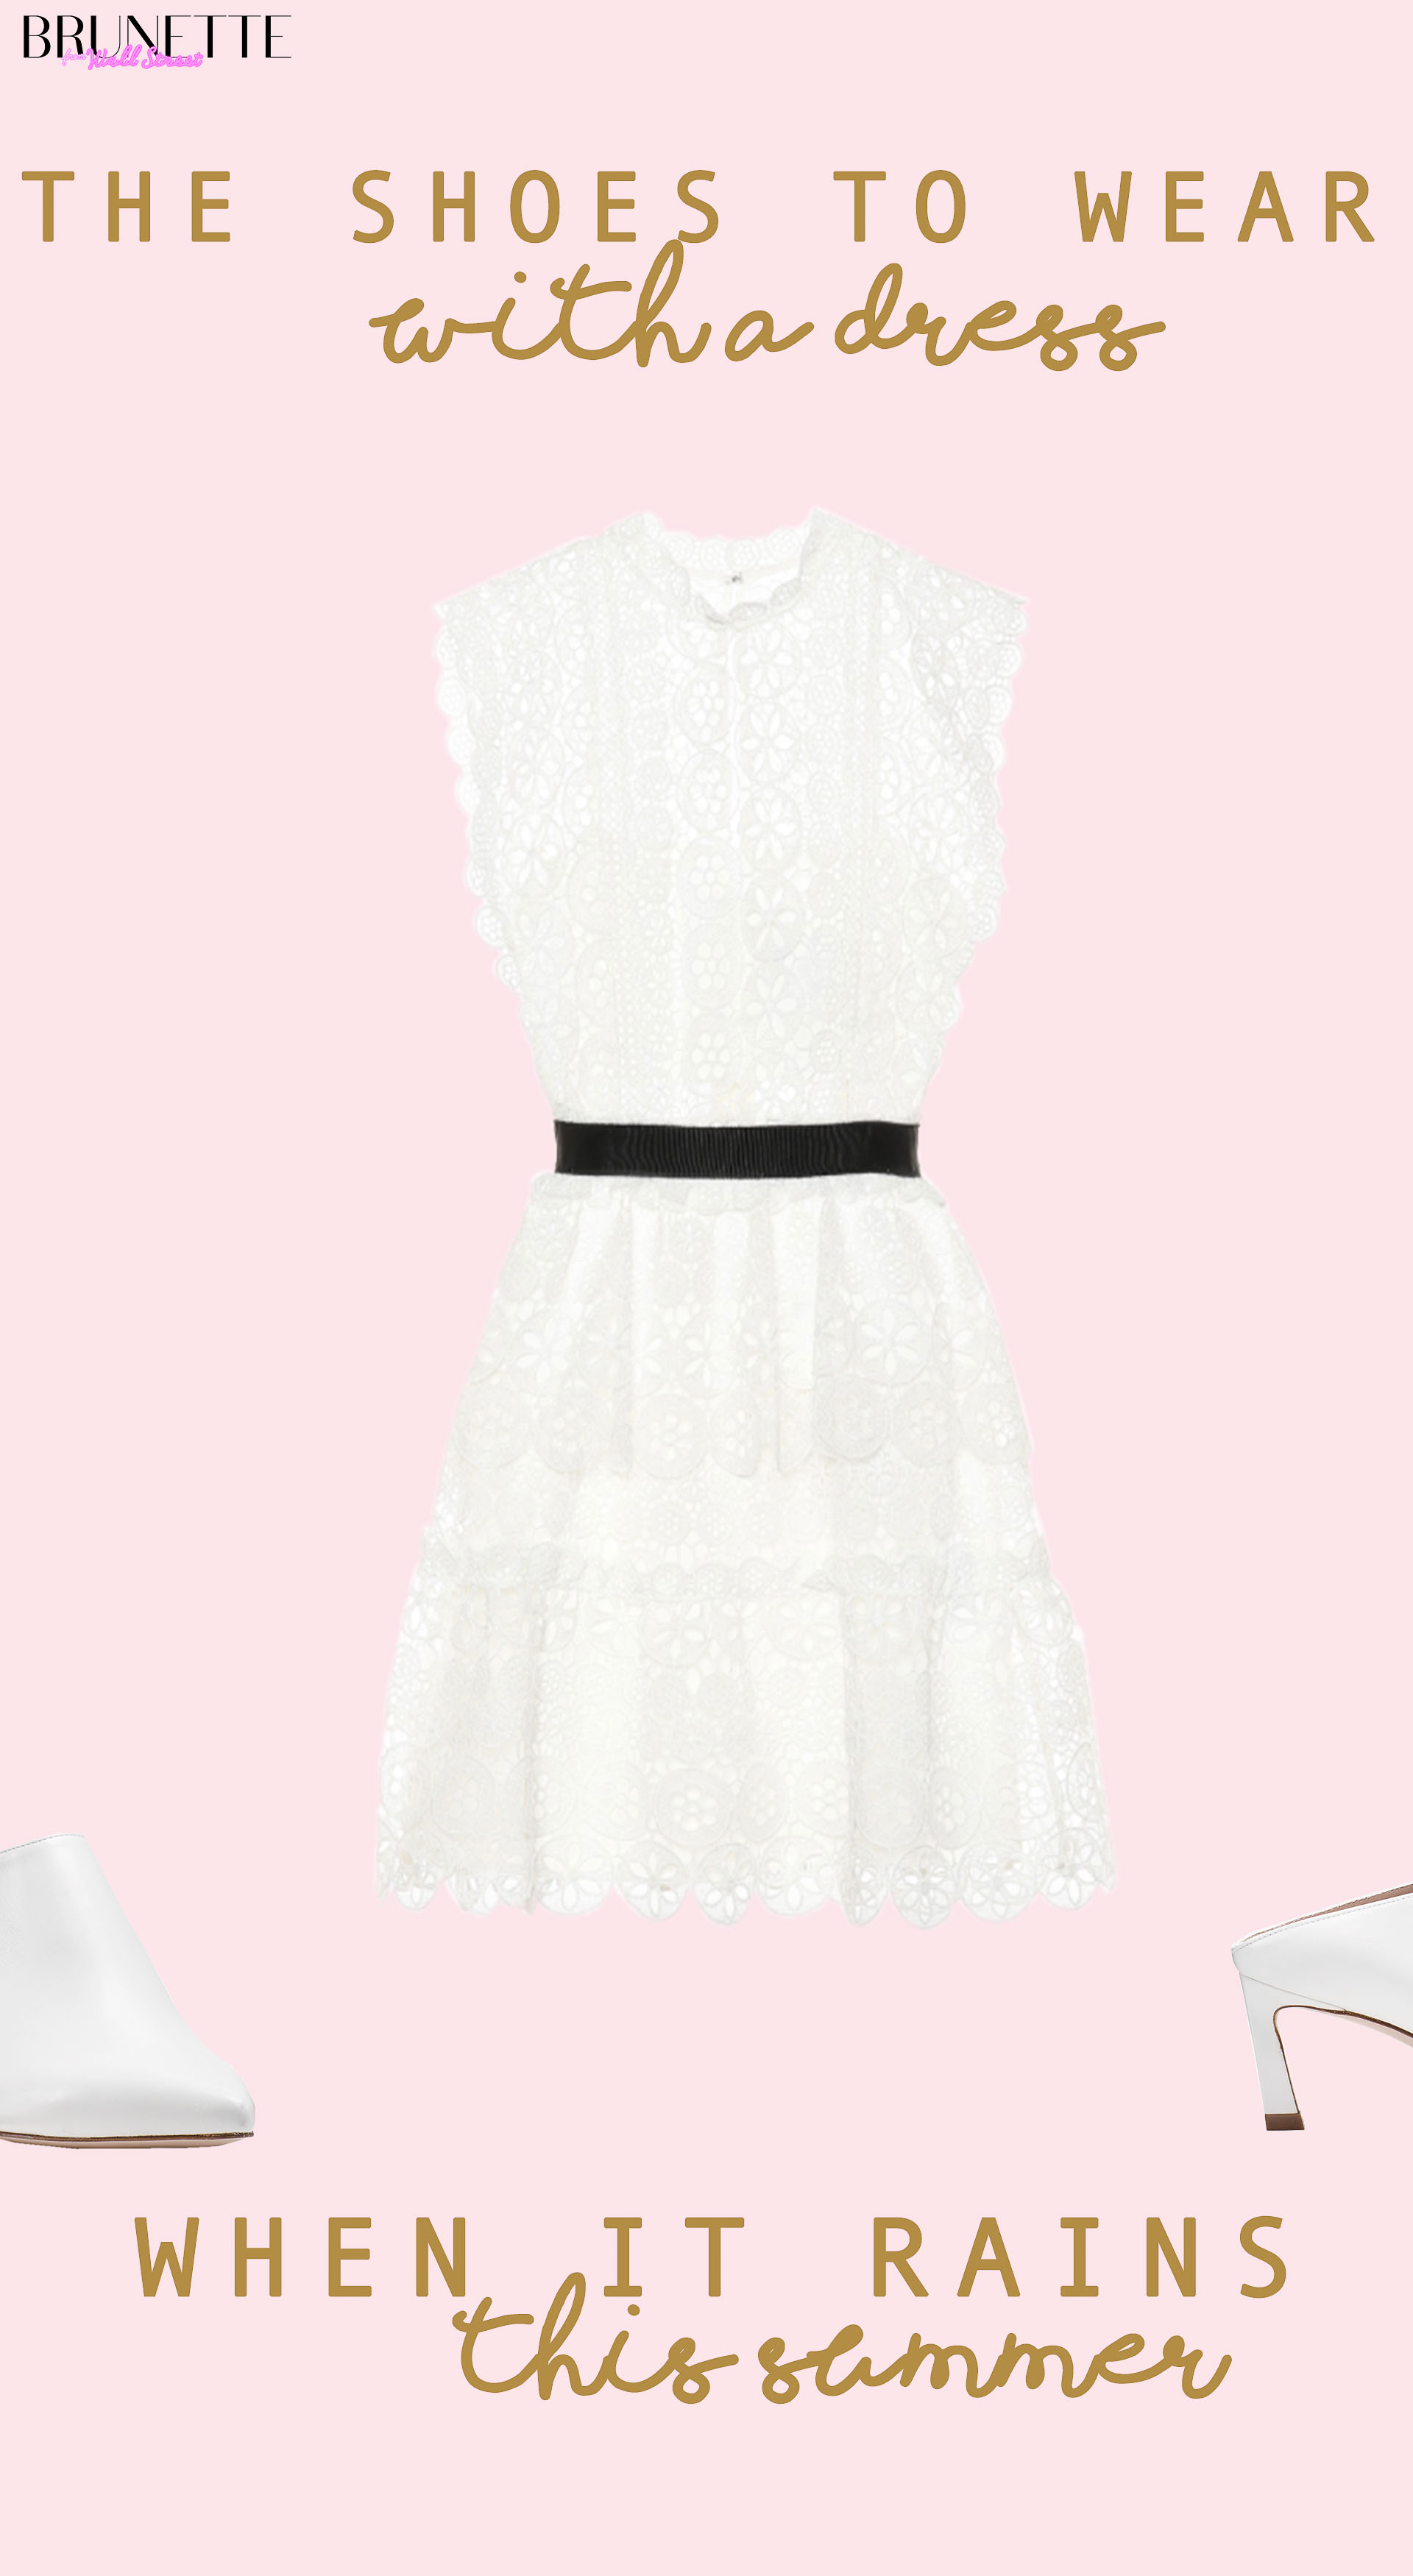 white lace Self-Portrait dress, white Stuart Weitzman mira mules with text overlay the shoes to wear with a white dress when it rains this summer